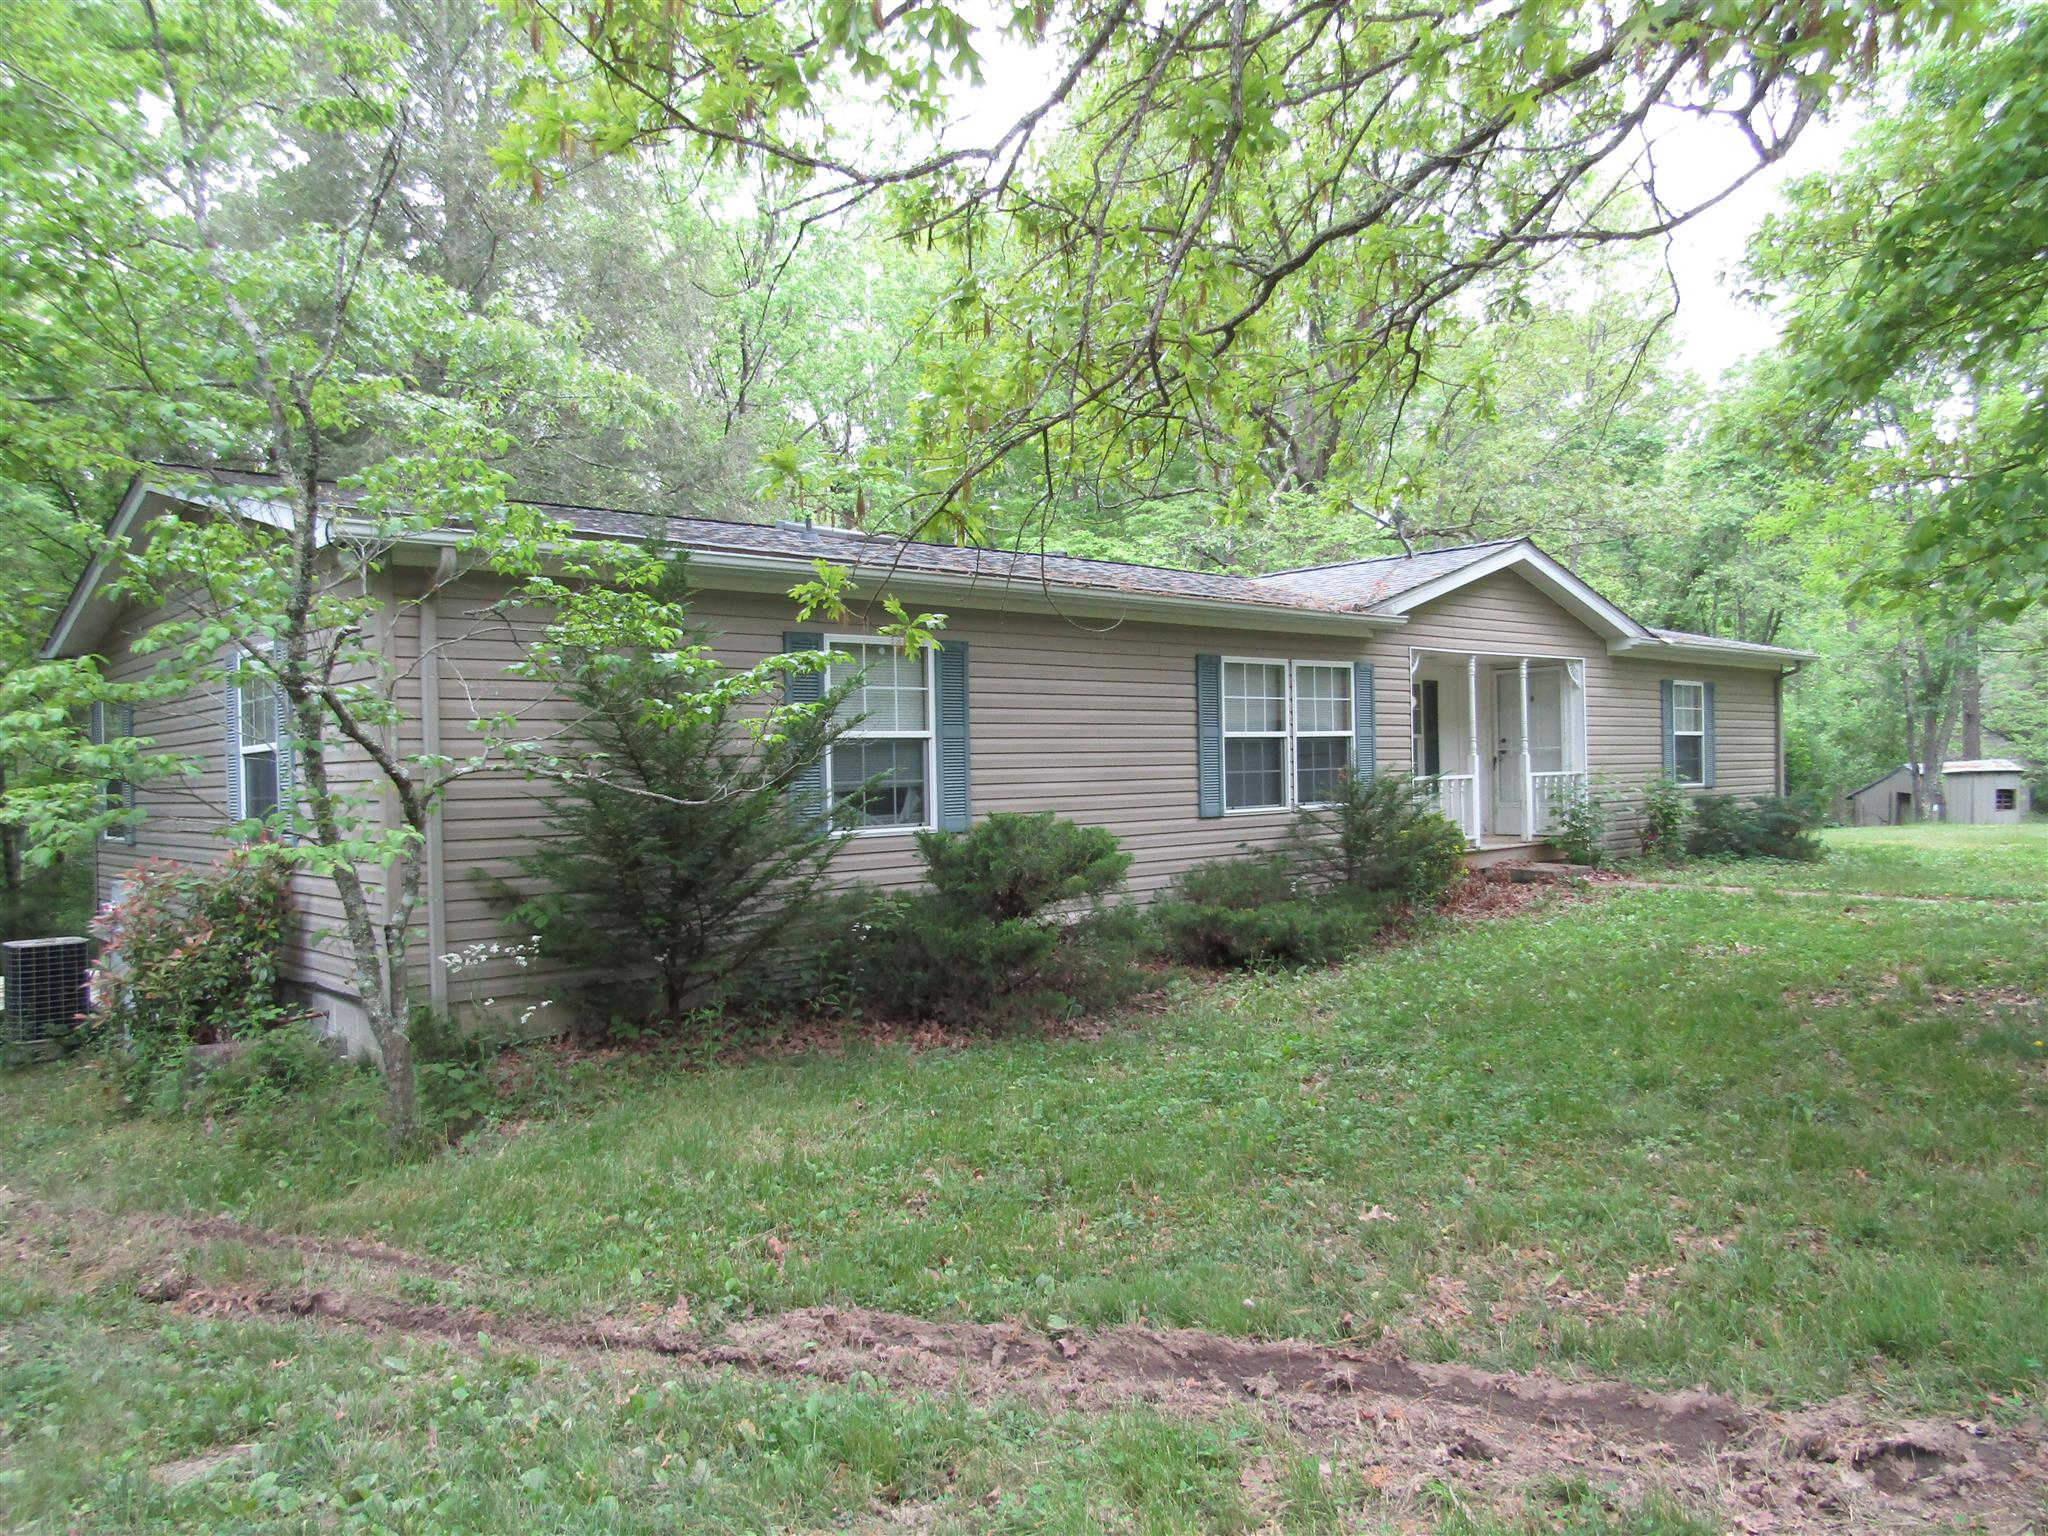 4112 Highway 127 S, Crossville, TN 38572 - Crossville, TN real estate listing